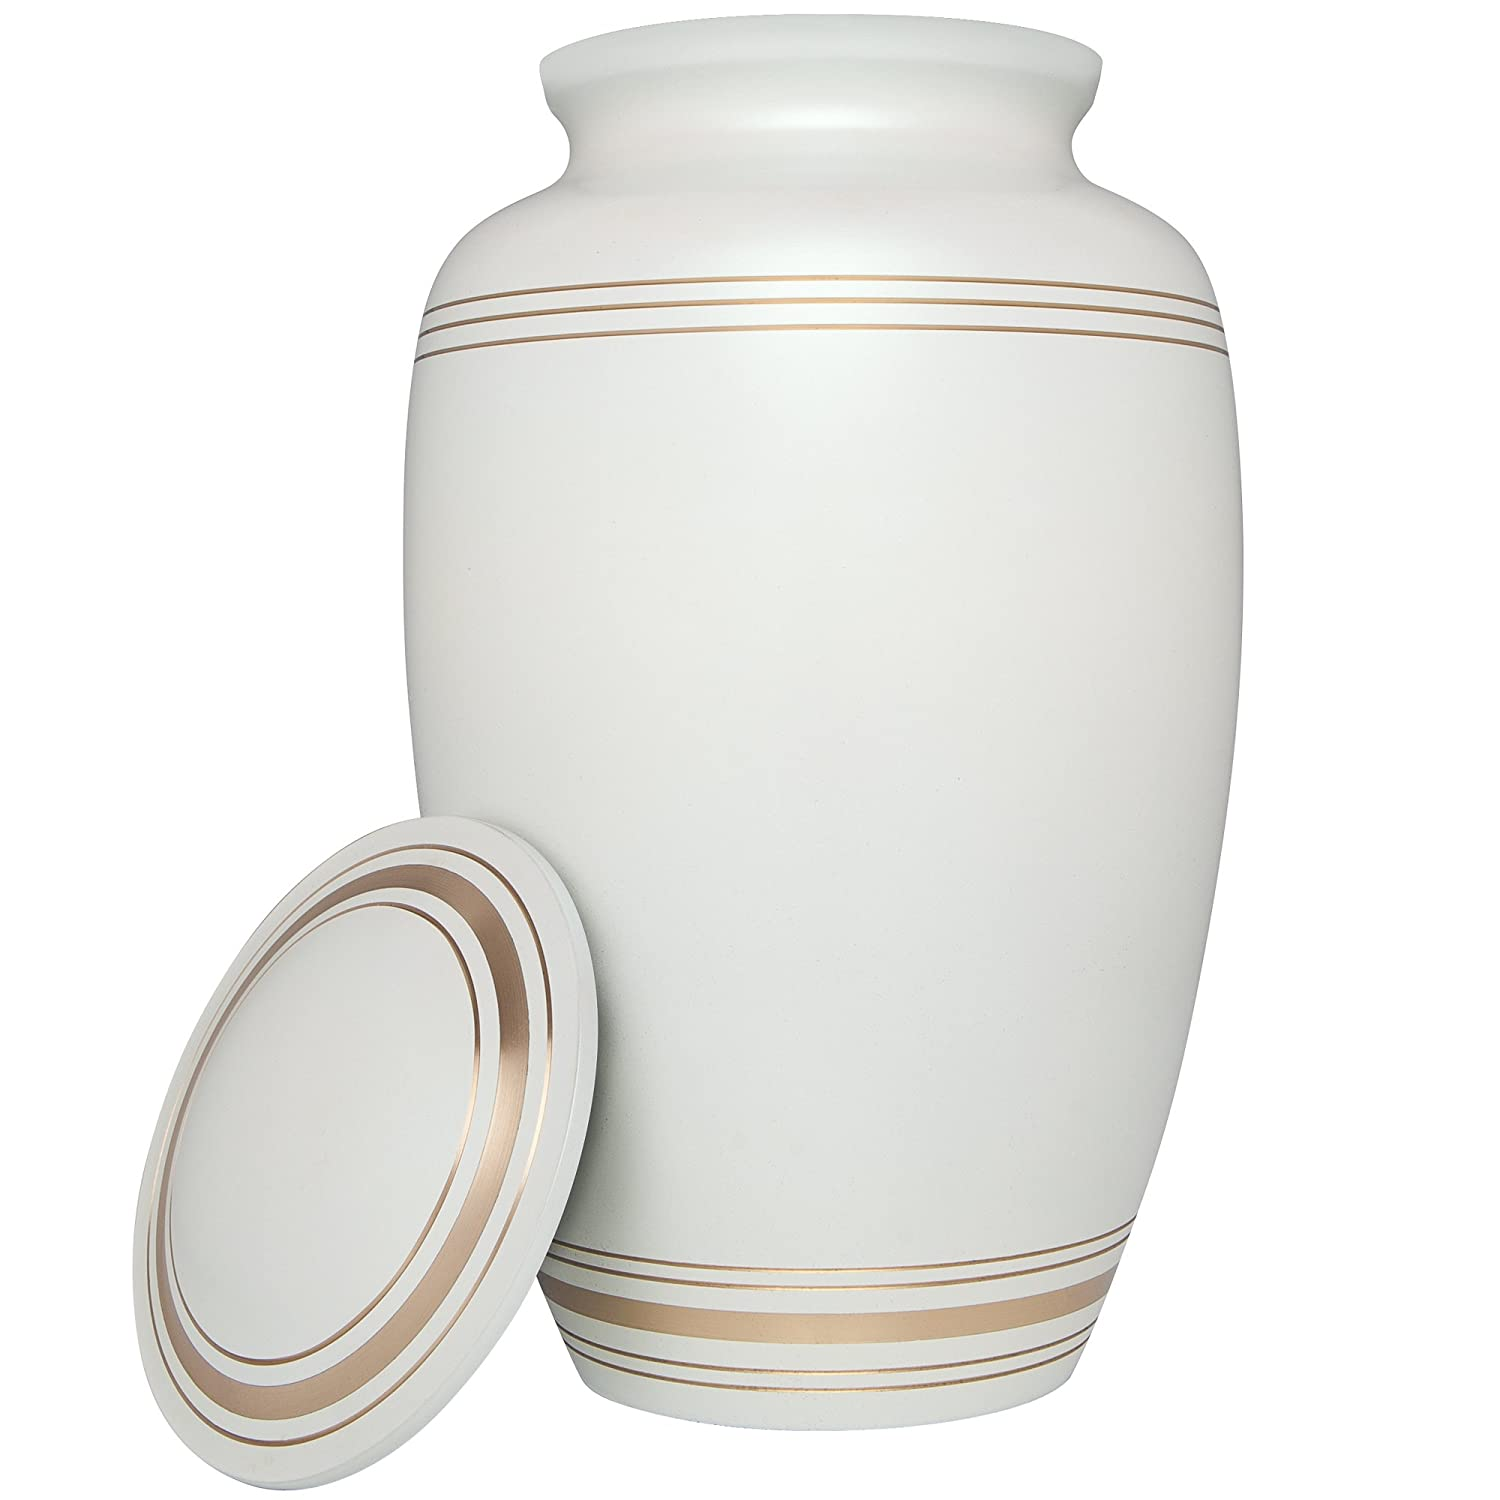 White Funeral Urn by Liliane Memorials – Cremation Urn for Human Ashes – Hand Made in Brass – Suitable for Cemetery Burial or Niche – Fits Remains of Adults up to 200 lbs – Classic Model